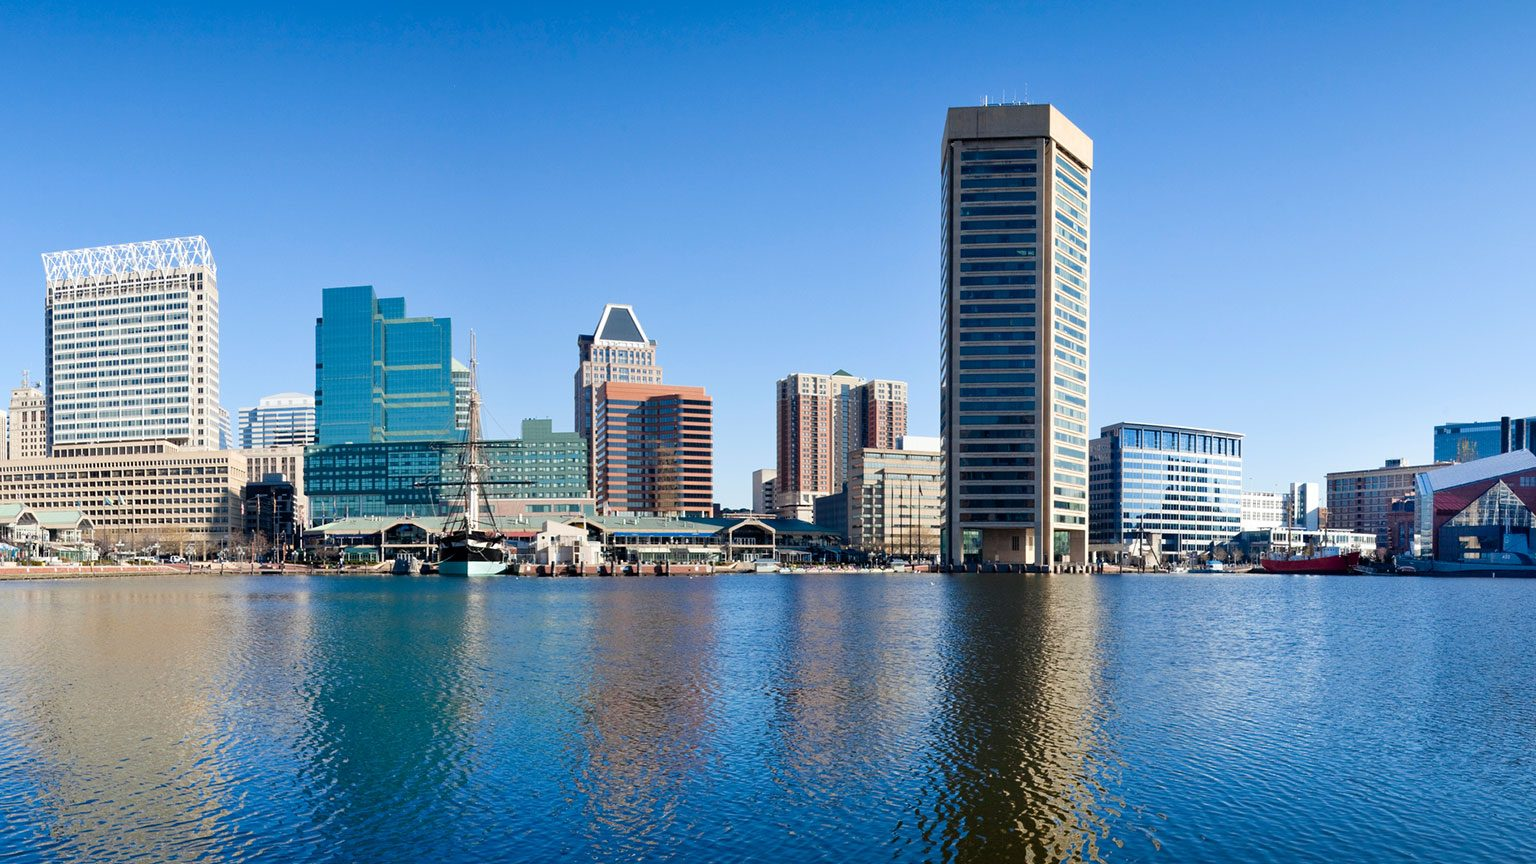 Baltimore inner harbor with city skyline during the day.